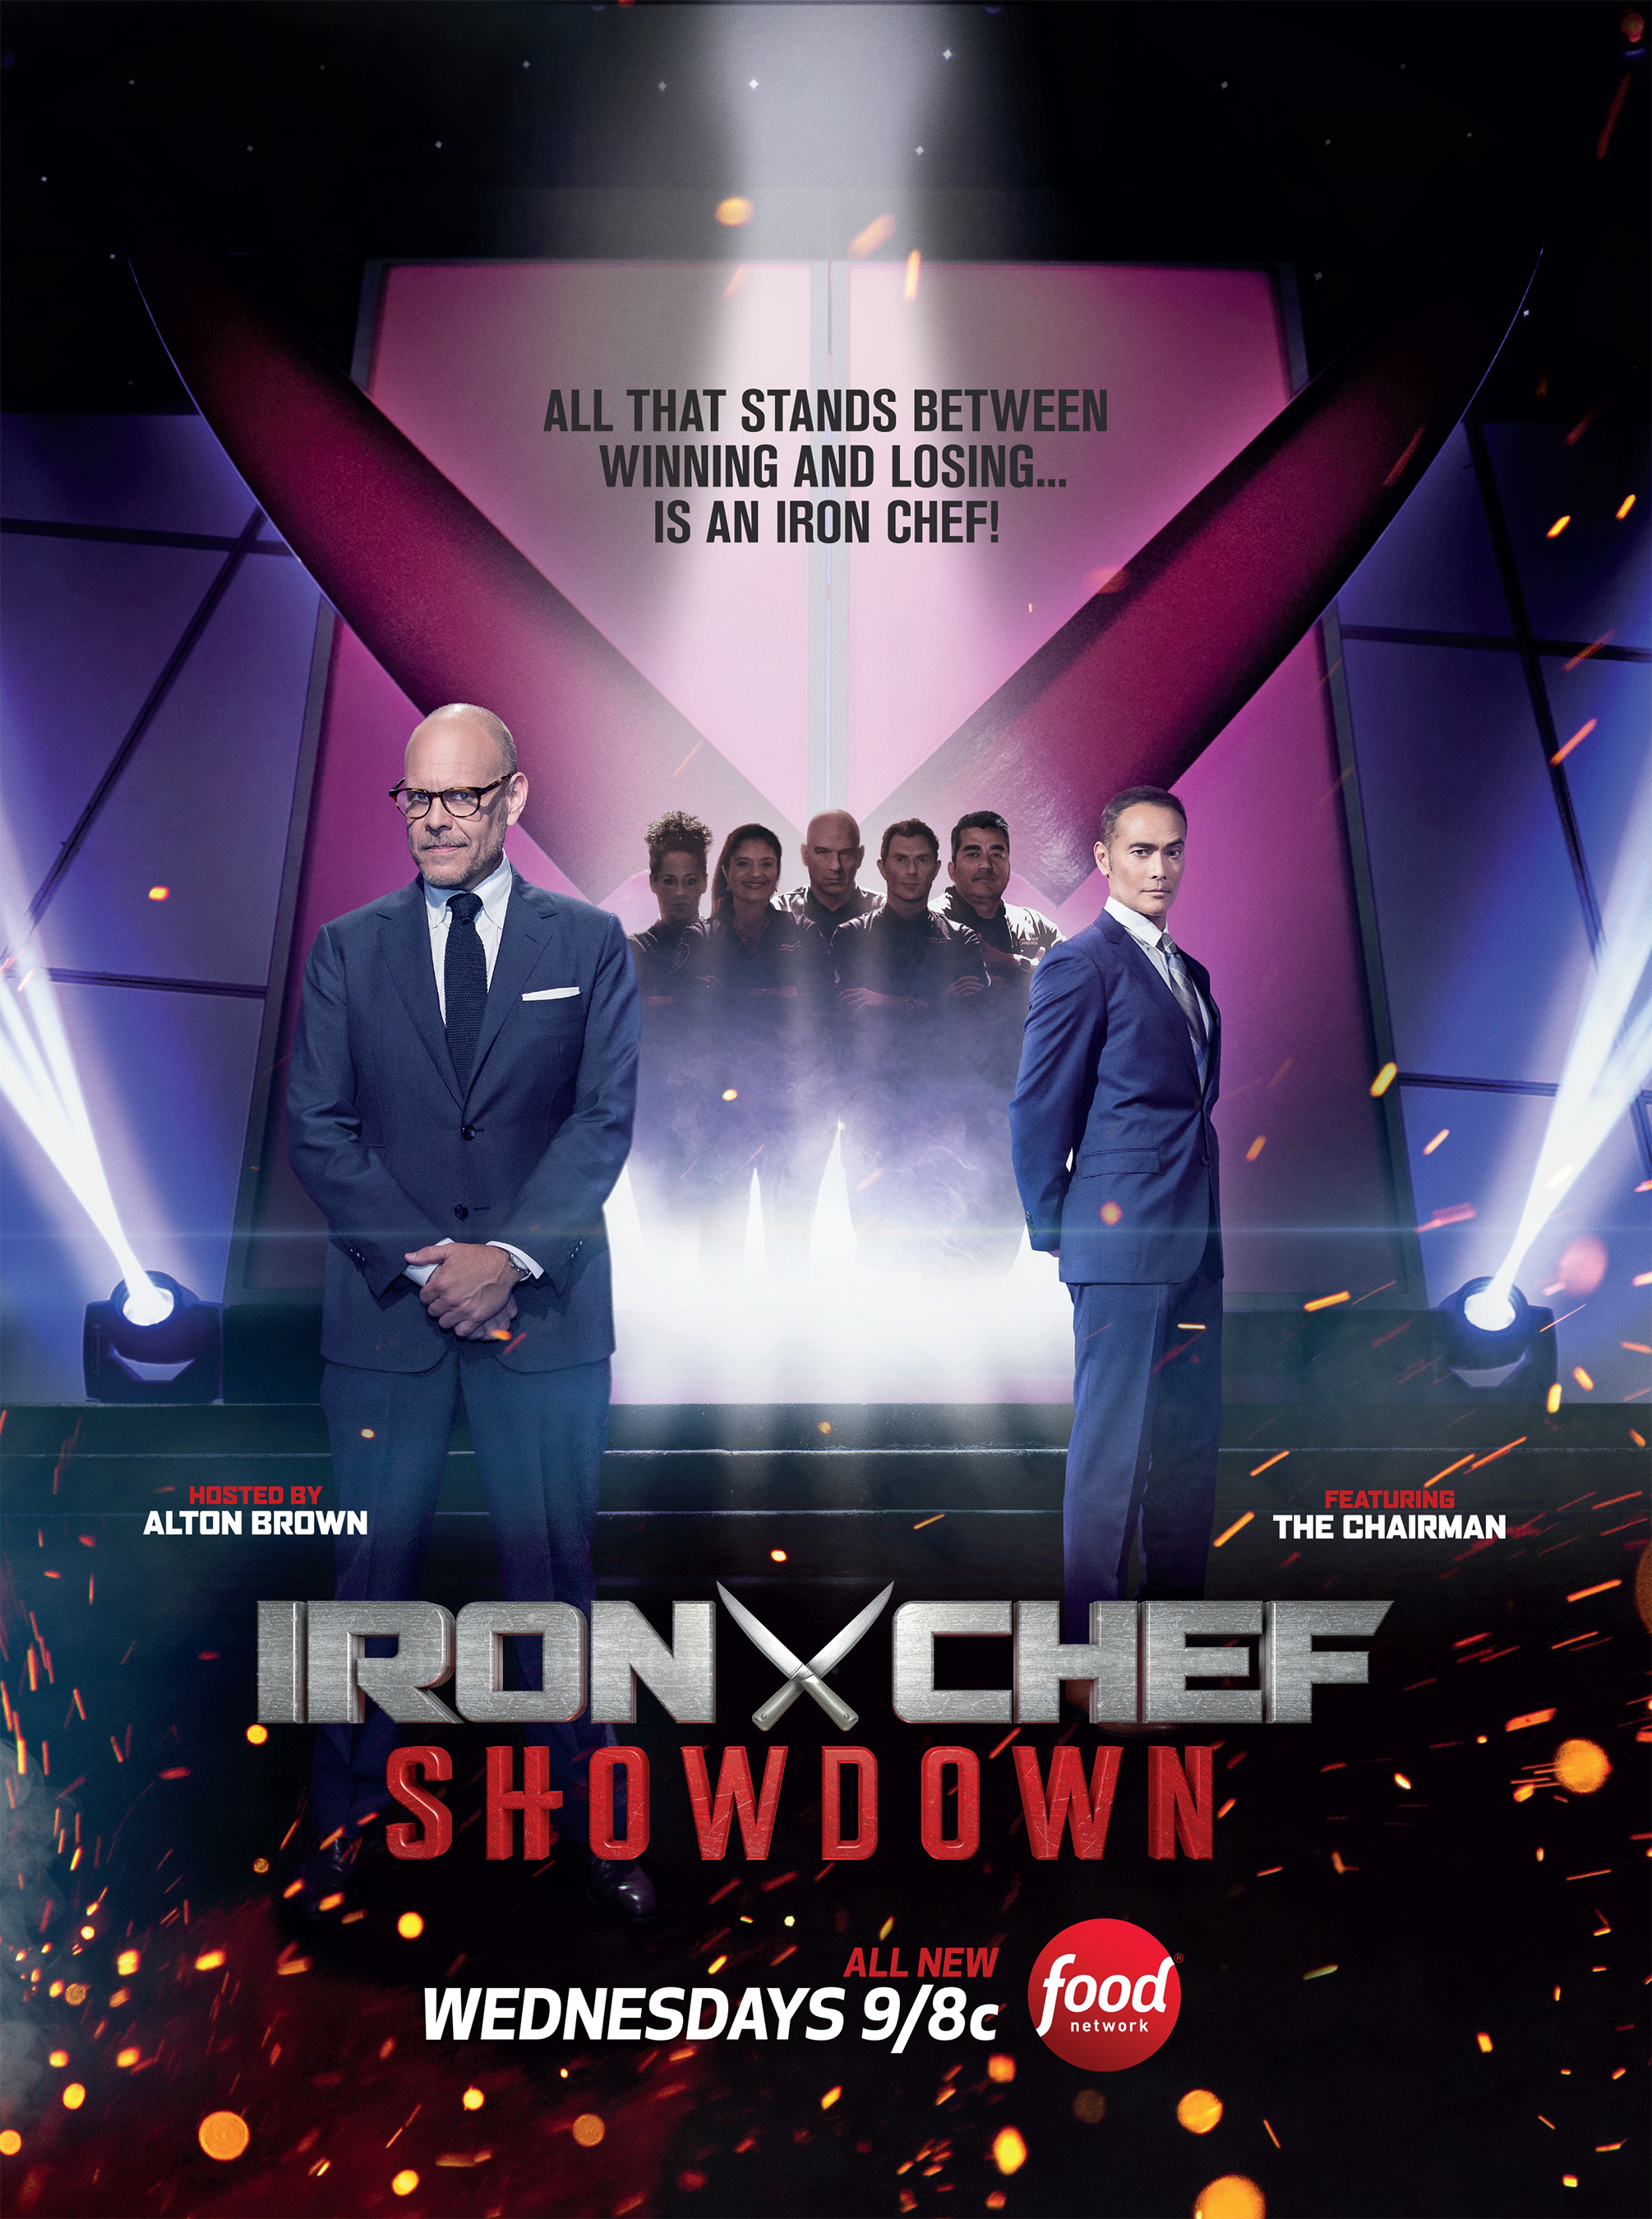 Iron Chefs Return To Legendary Kitchen Stadium For Reimagined Take On Fan-Favorite Franchise In Iron Chef Showdown